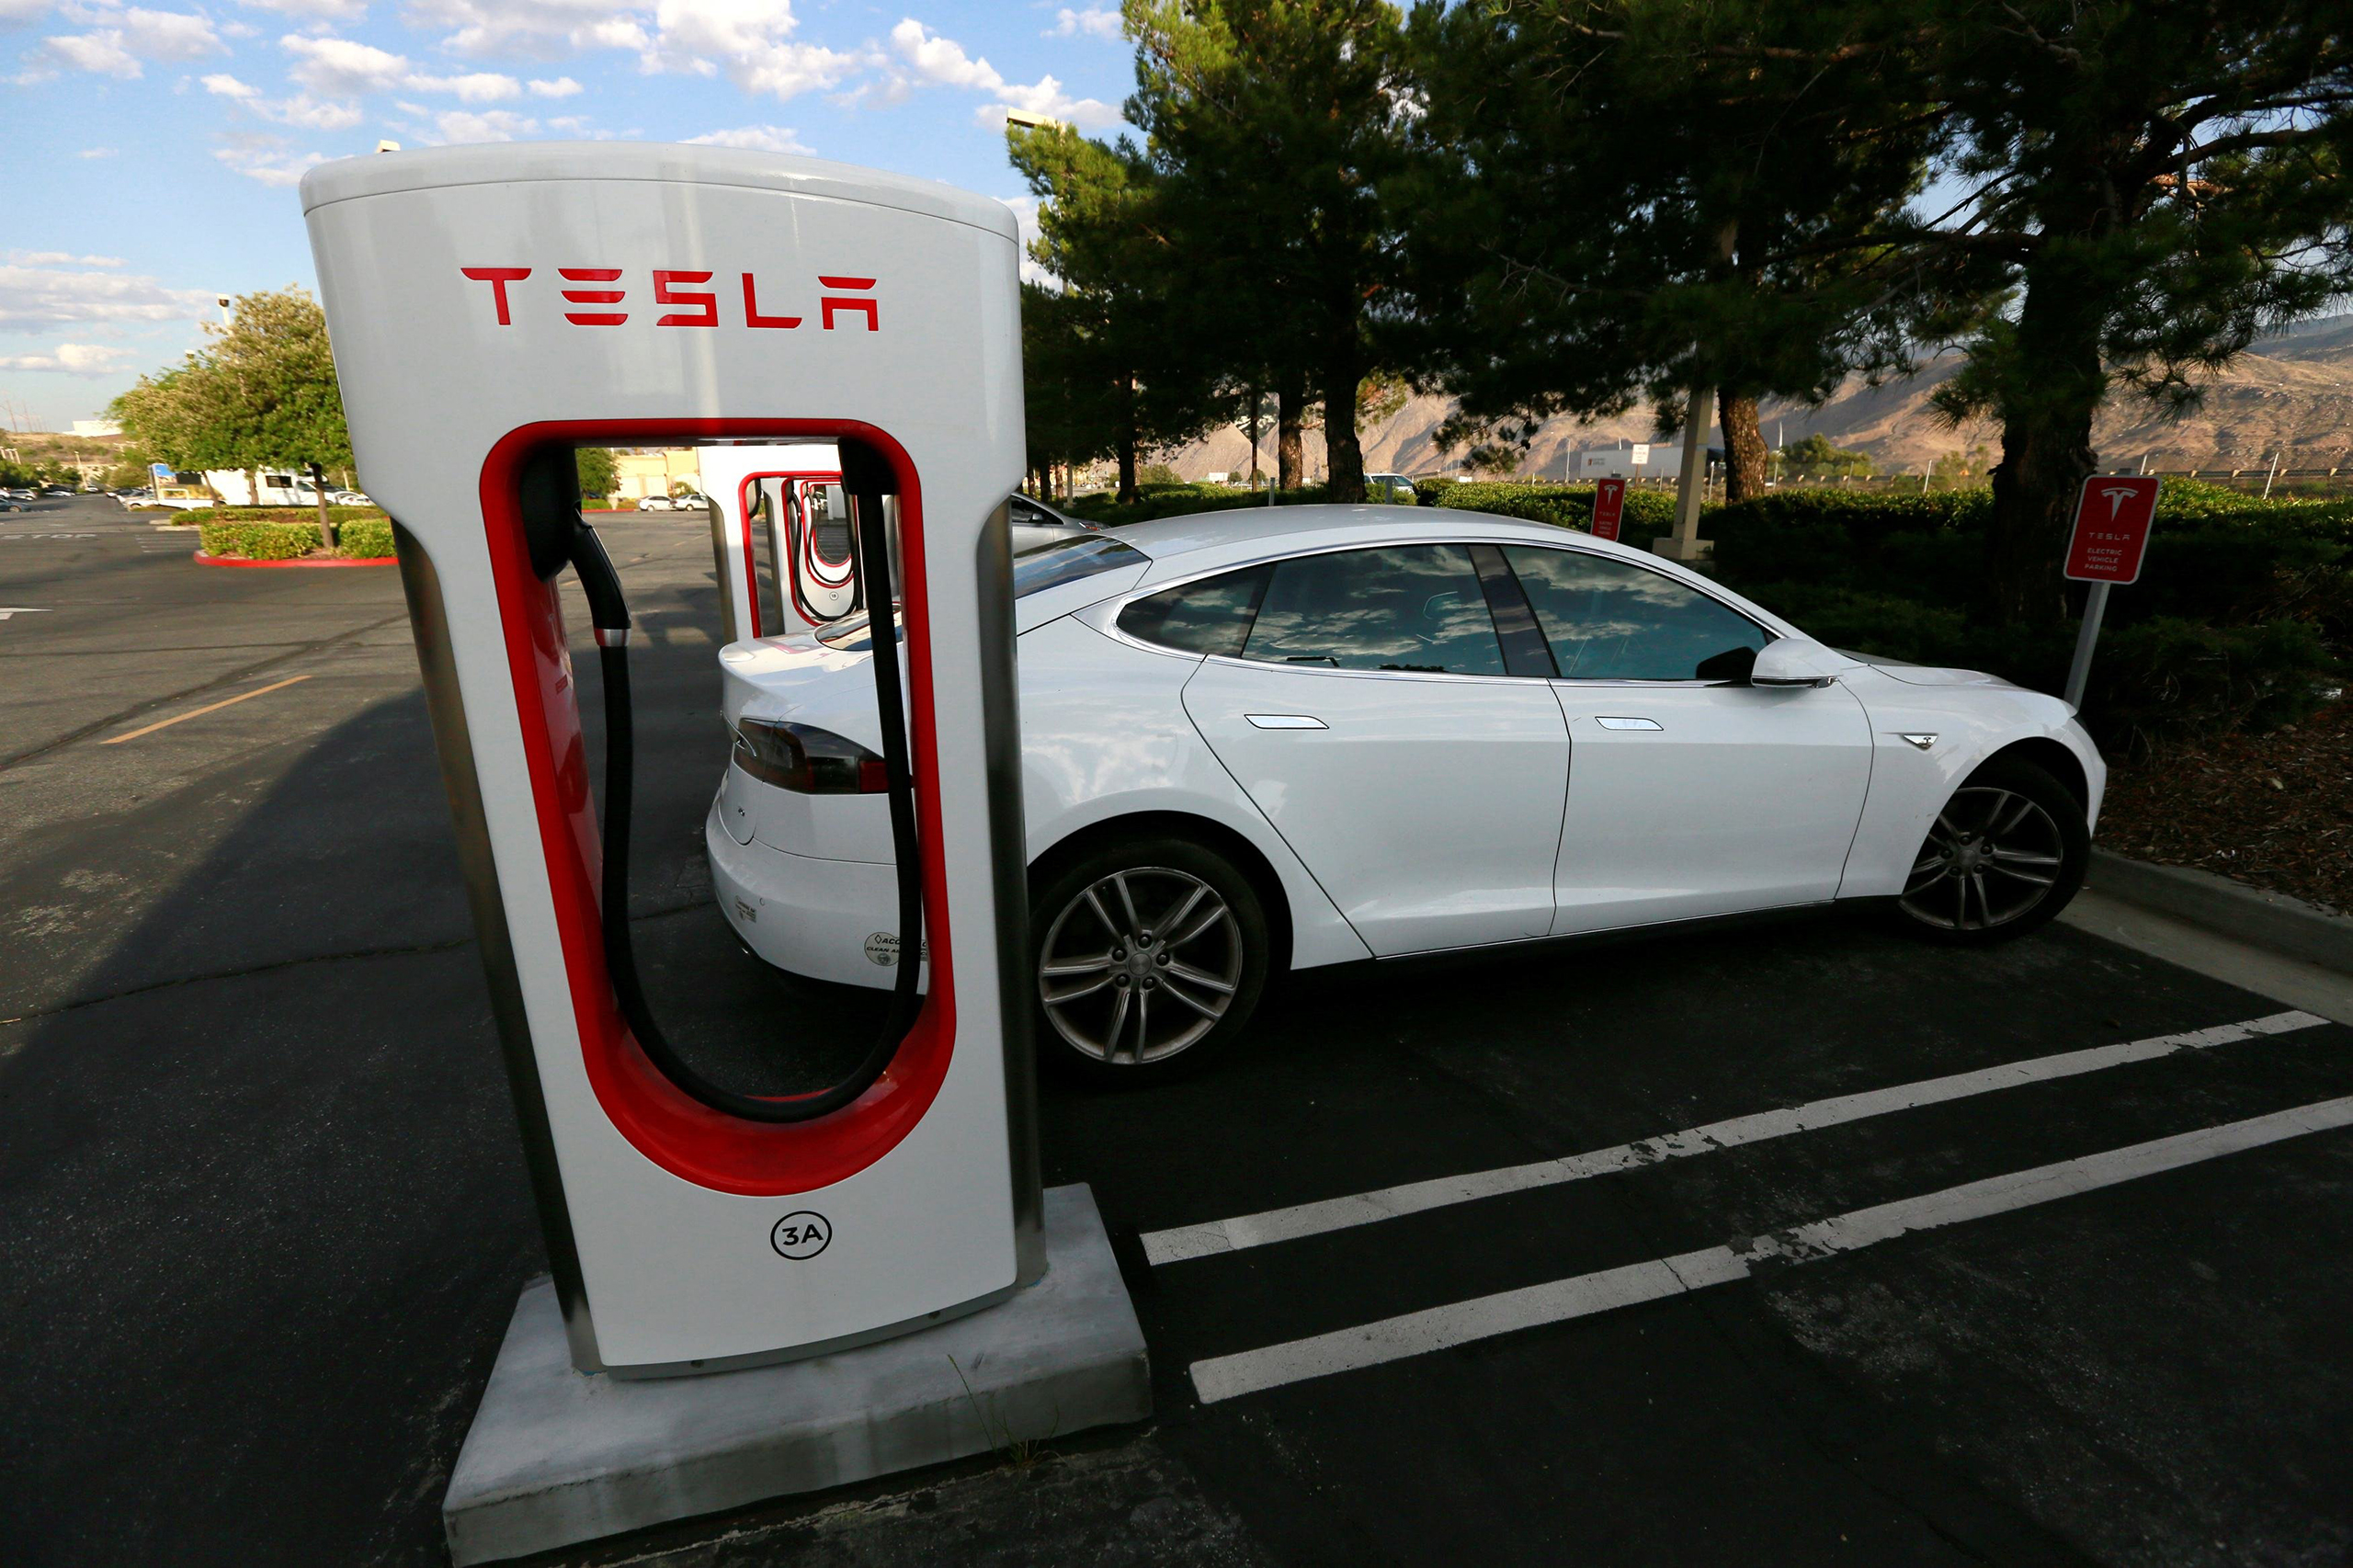 A Tesla Model S charges at a Tesla Supercharger station in Cabazon, Calif., May 18, 2016.